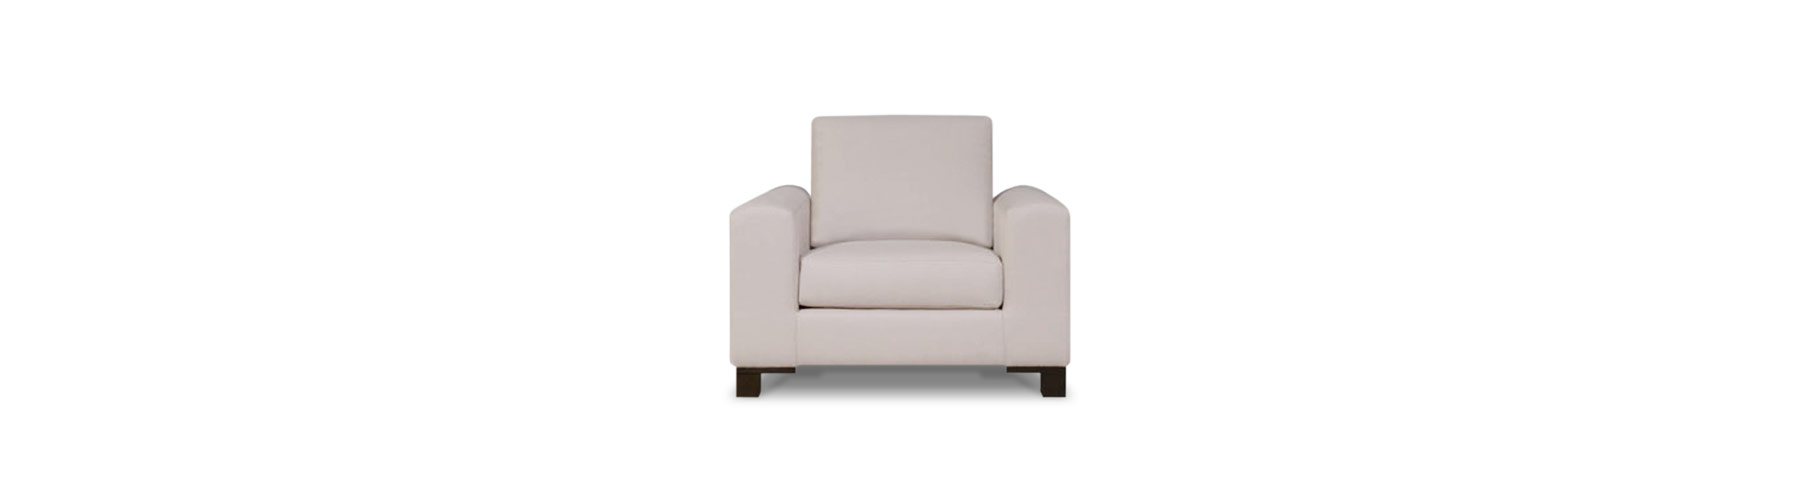 Brooklyn - Fauteuil William